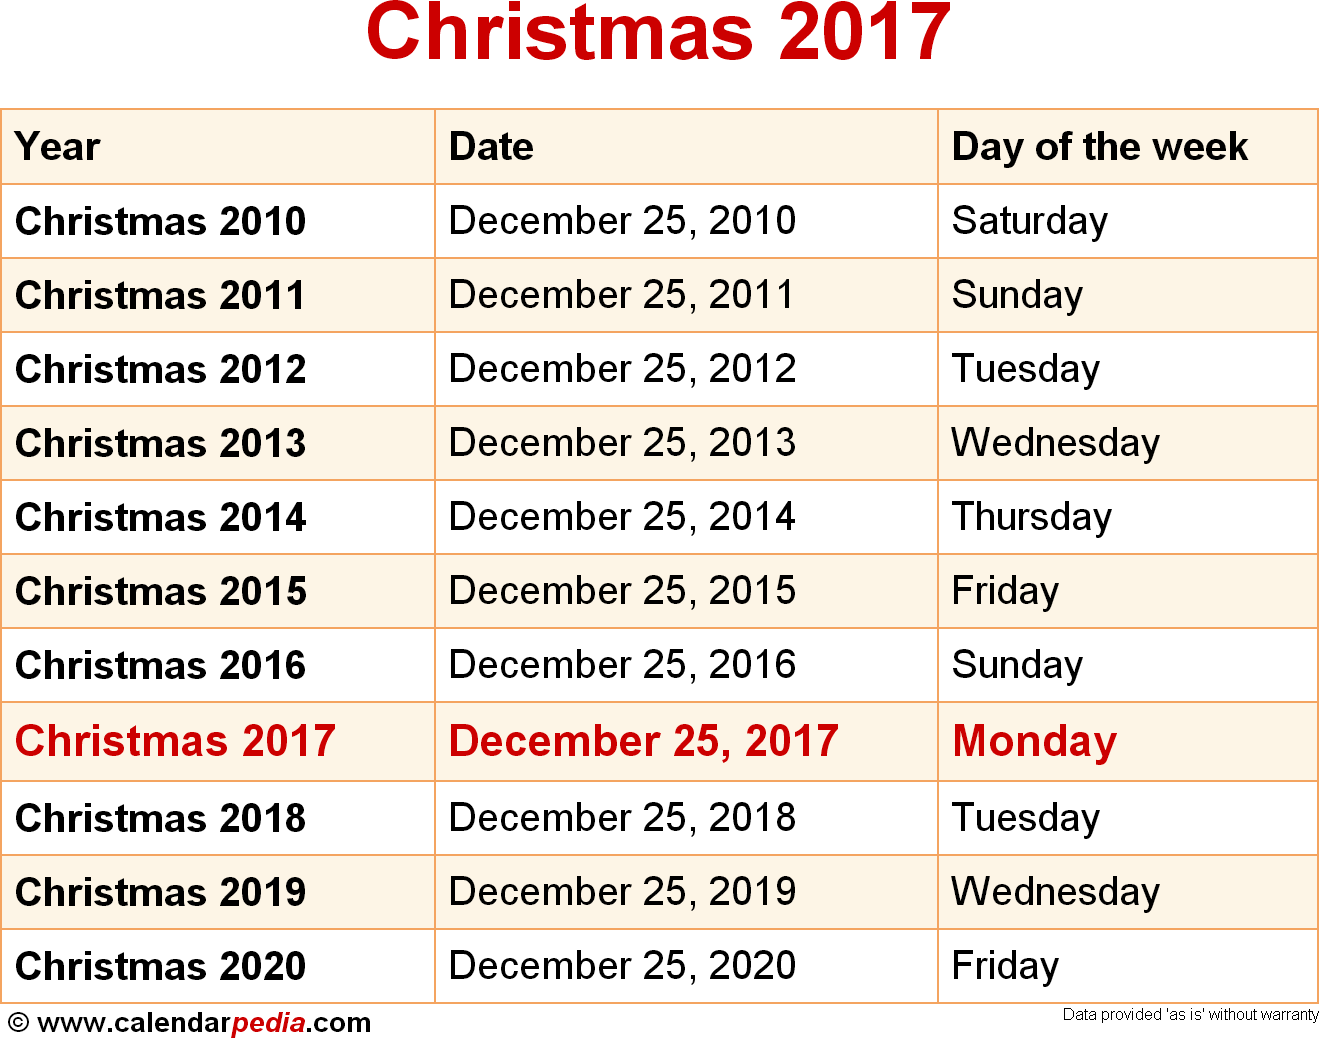 When is Christmas 2017 & 2018? Dates of Christmas